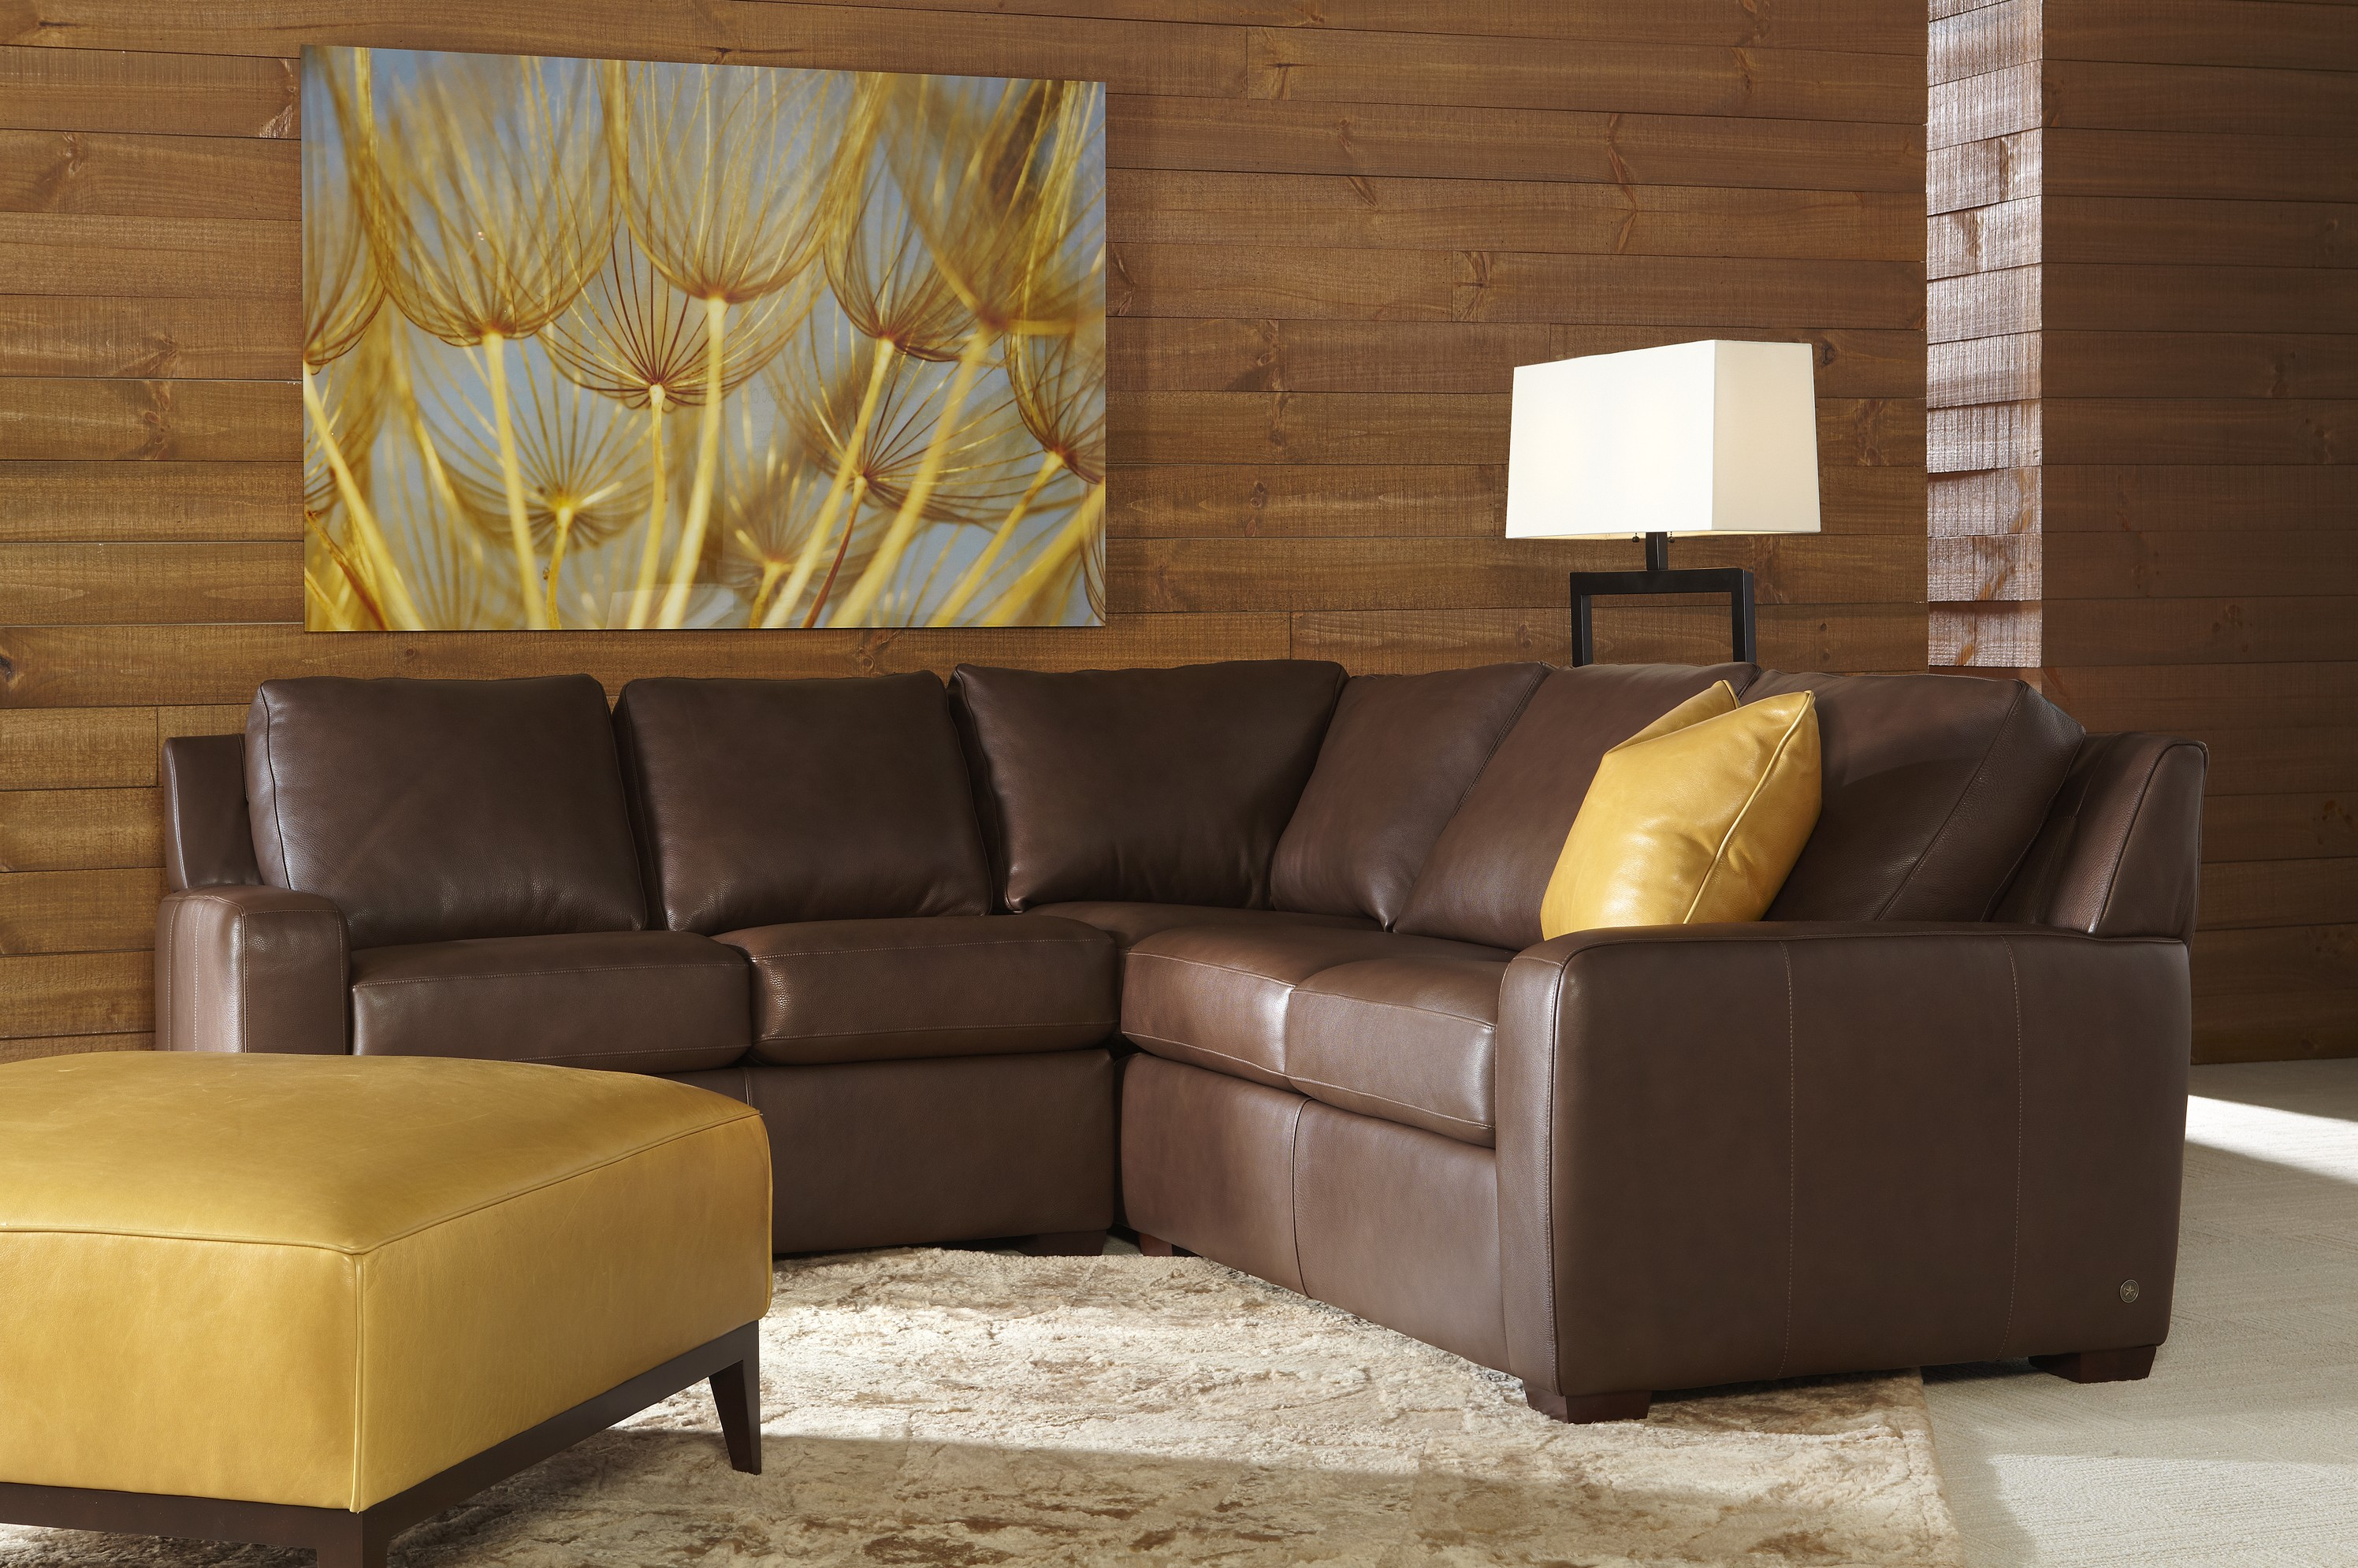 Mesmerizing Sofas and Sectionals for Living Room Furniture Ideas: Breathtaking Design Sofas And Sectionals With Cushion And Laminate Flooring For Living Room Ideas